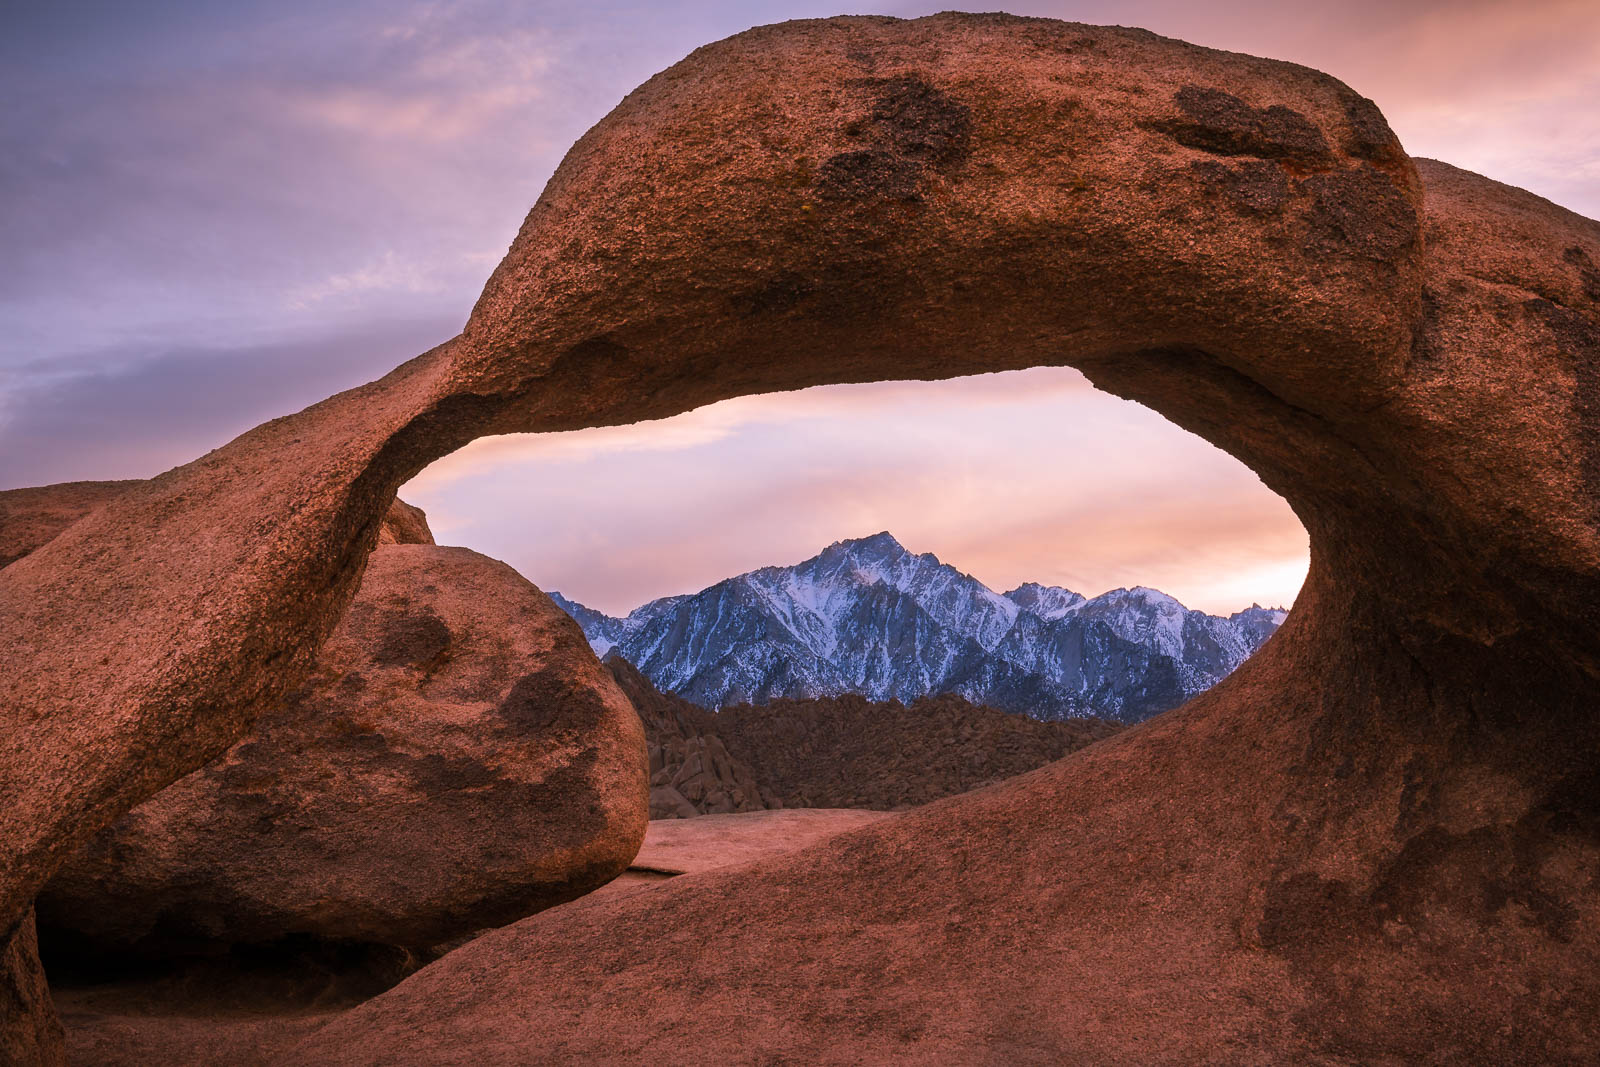 A Limited Edition of 50 Mobius Arch in the Alabama Hills of of the Sierra Nevada in California perfectly frames Mt. Whitney